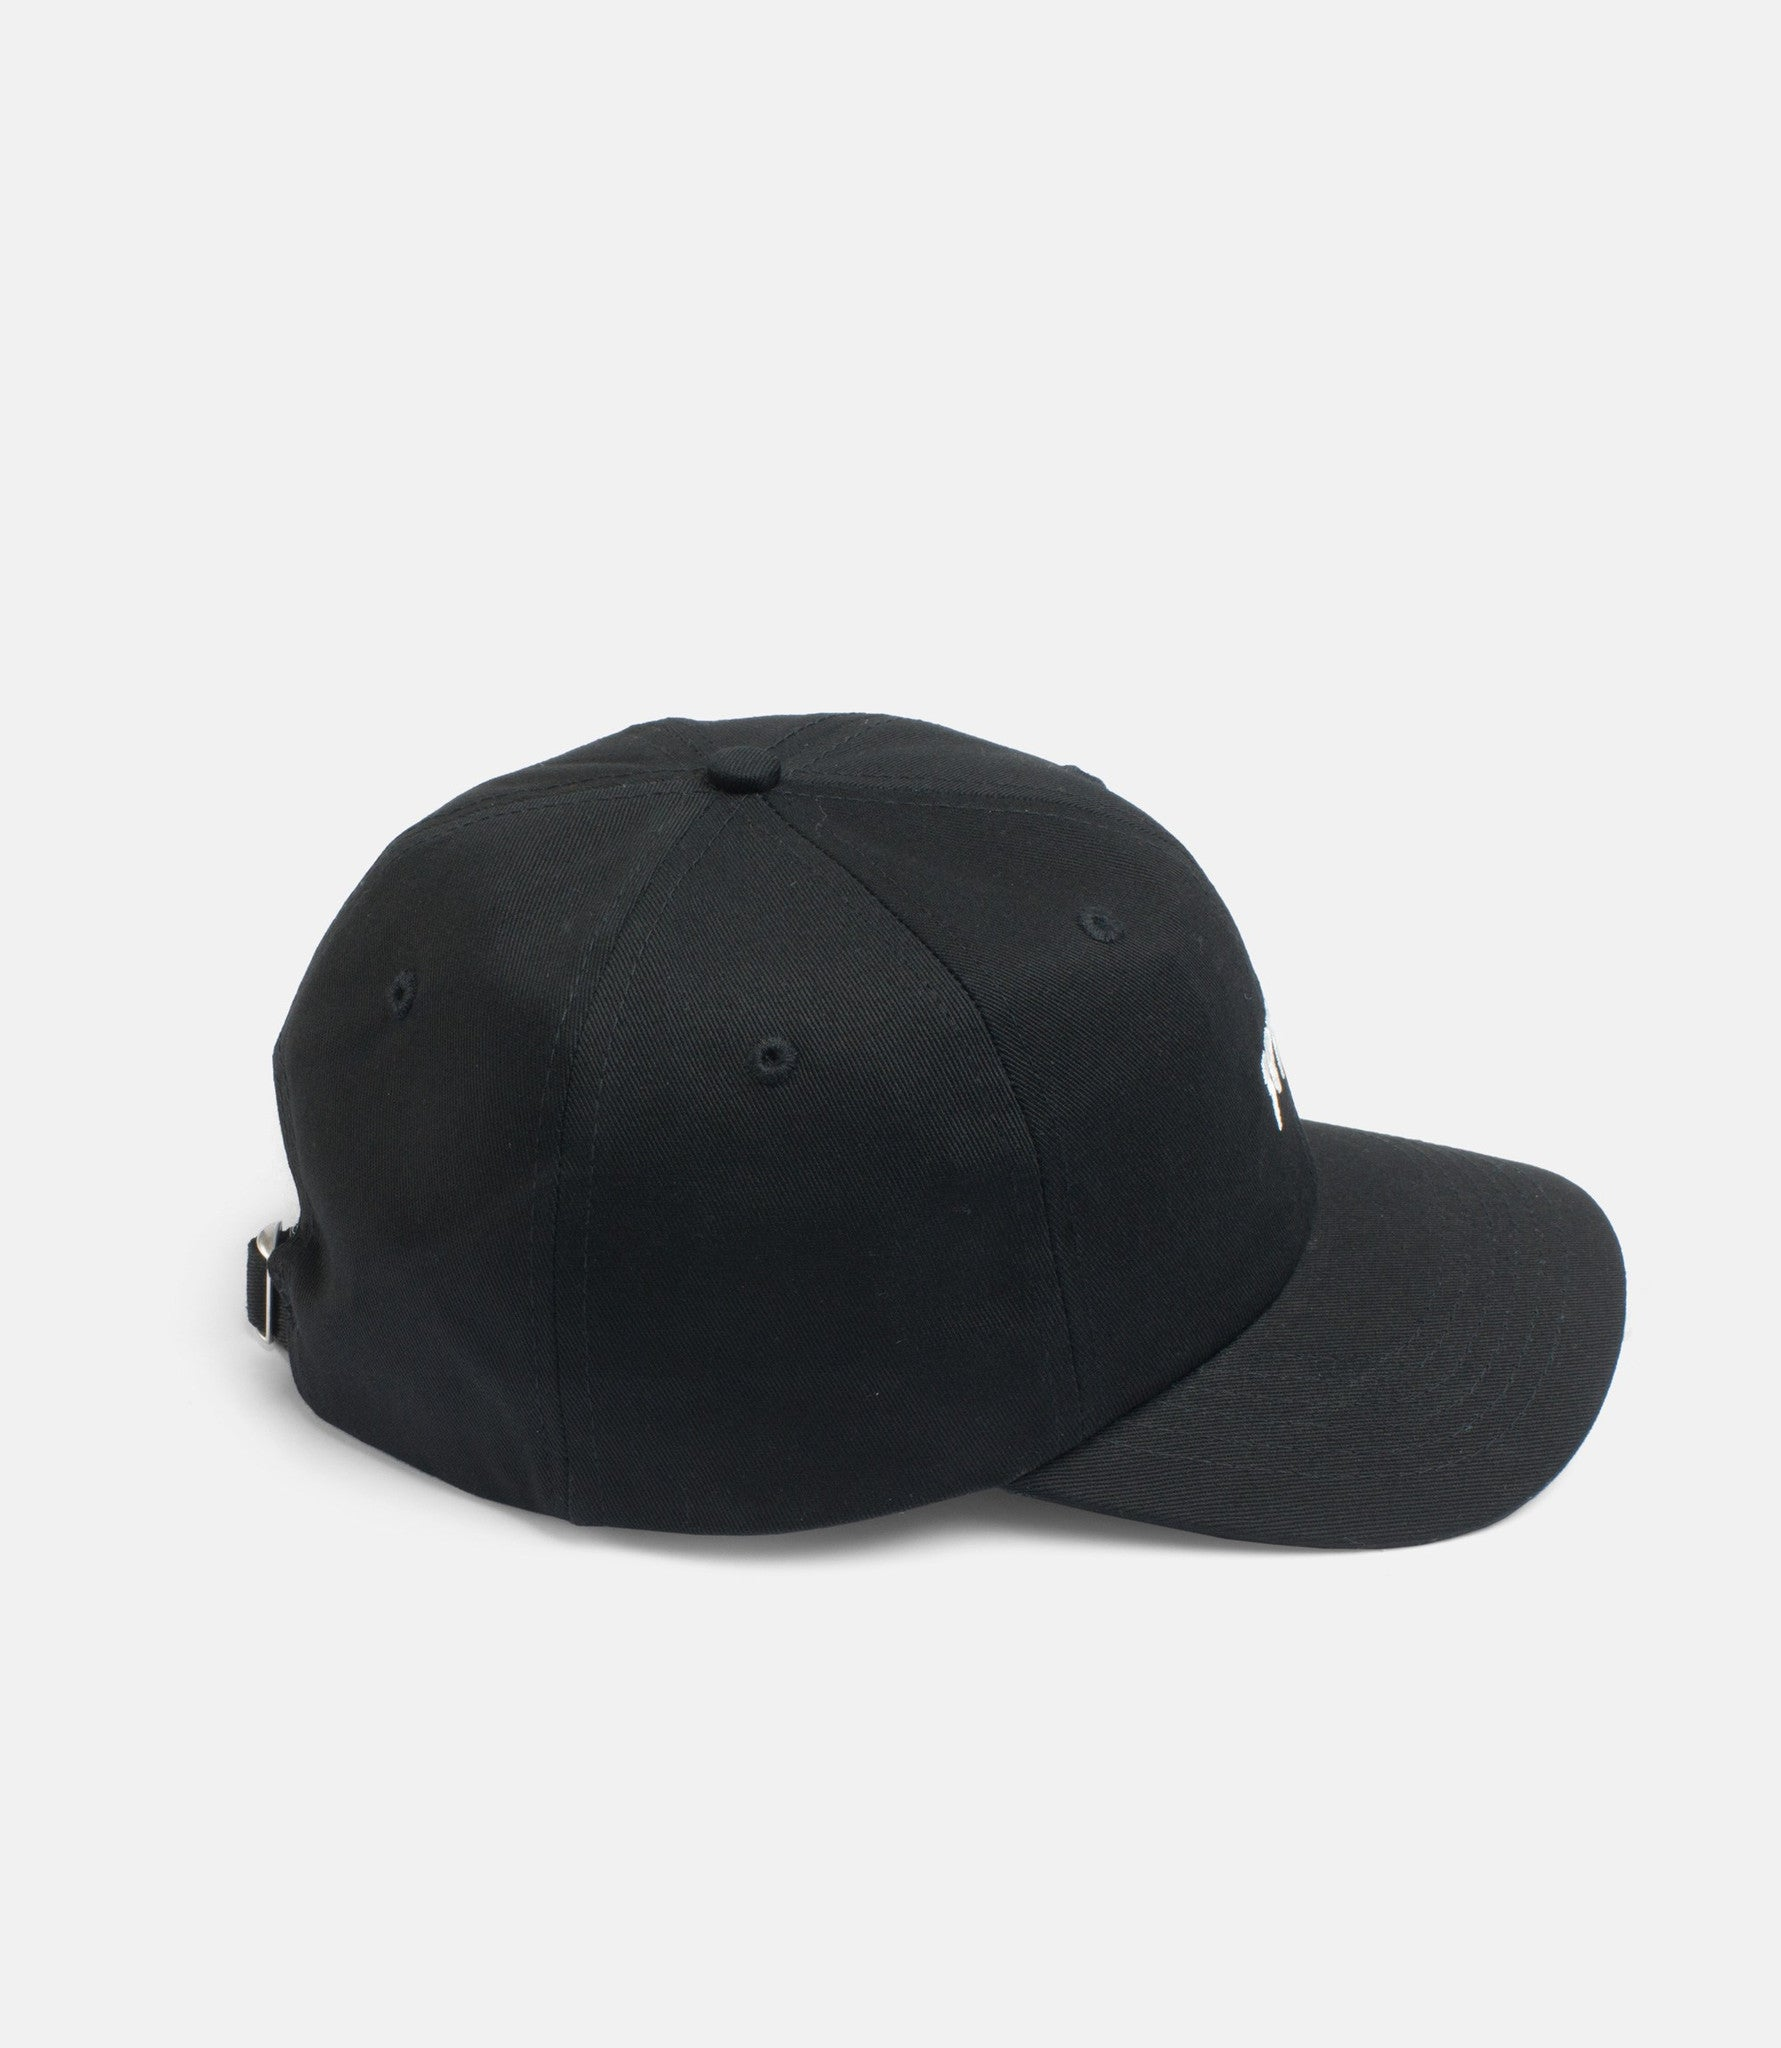 10Deep - Sound & Fury Strapback, Black - The Giant Peach - 3